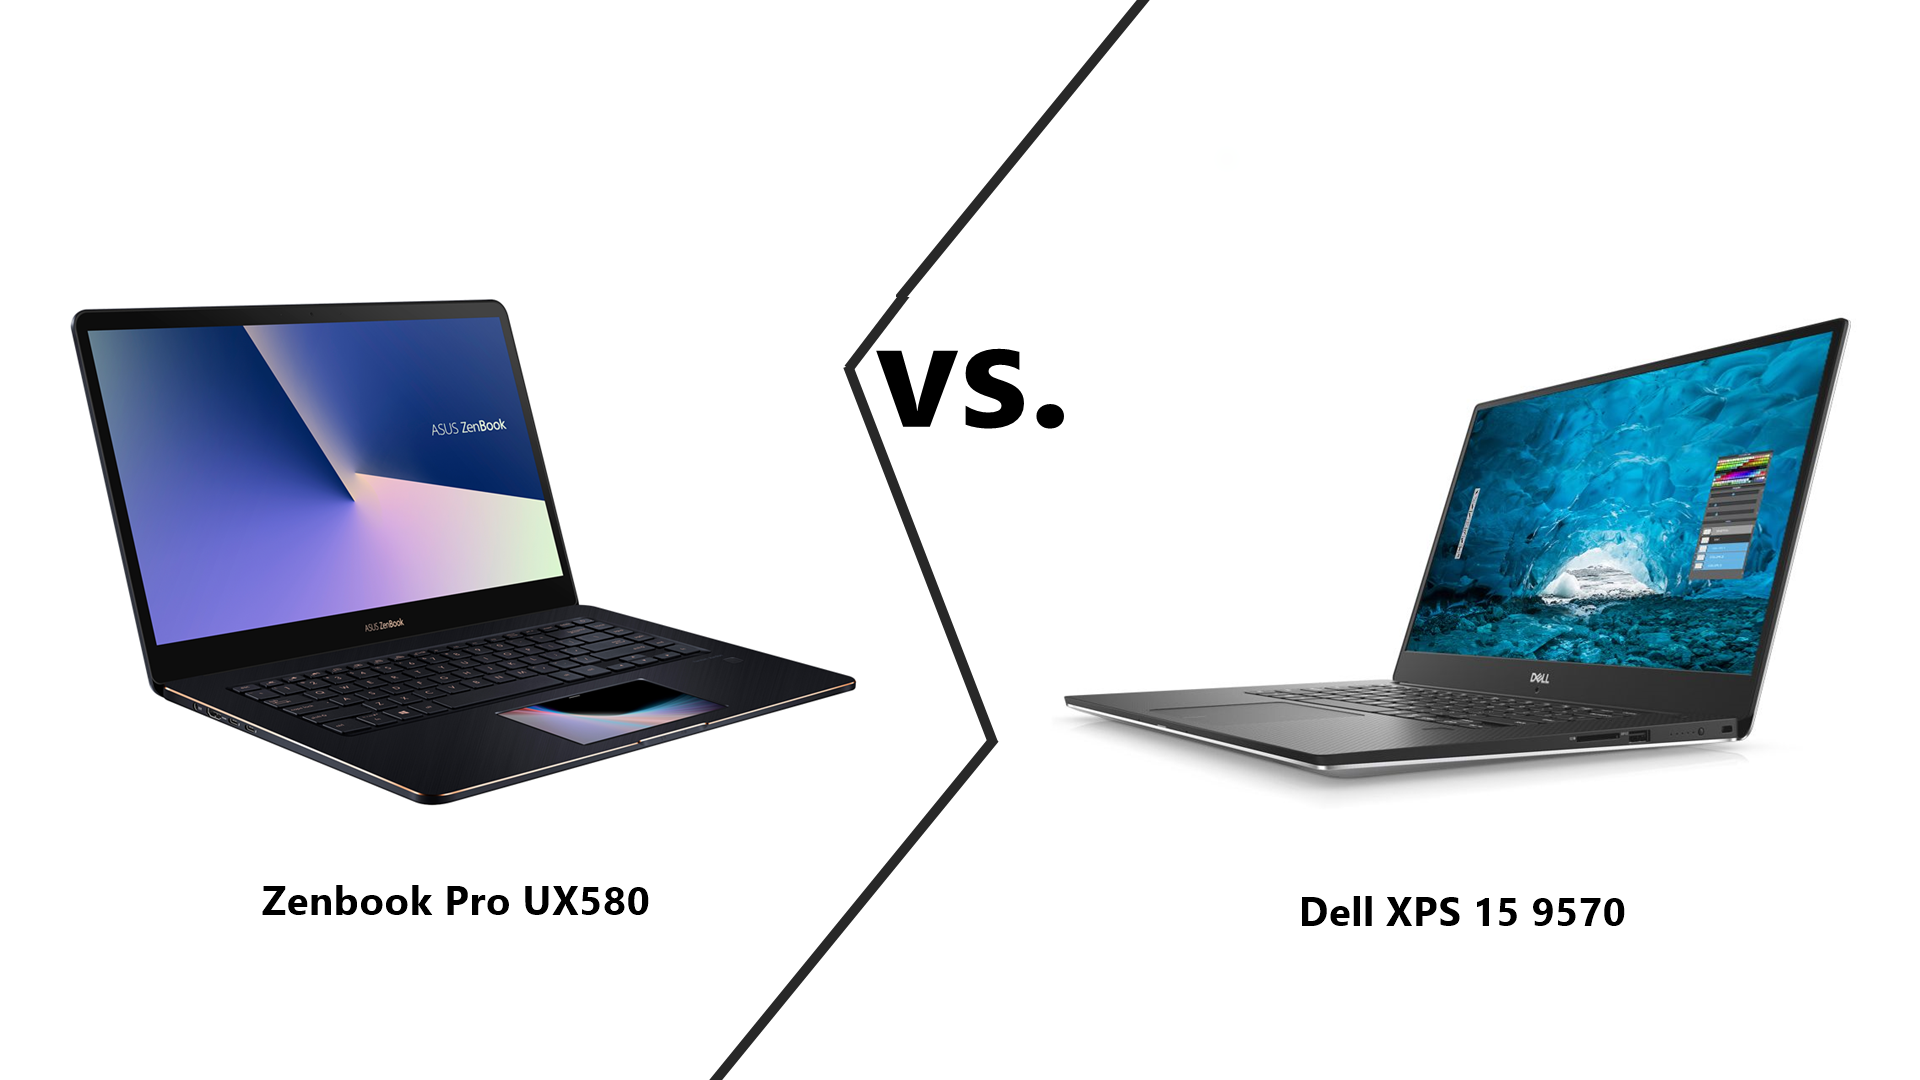 Zenbook Pro 15 vs. Dell XPS 15